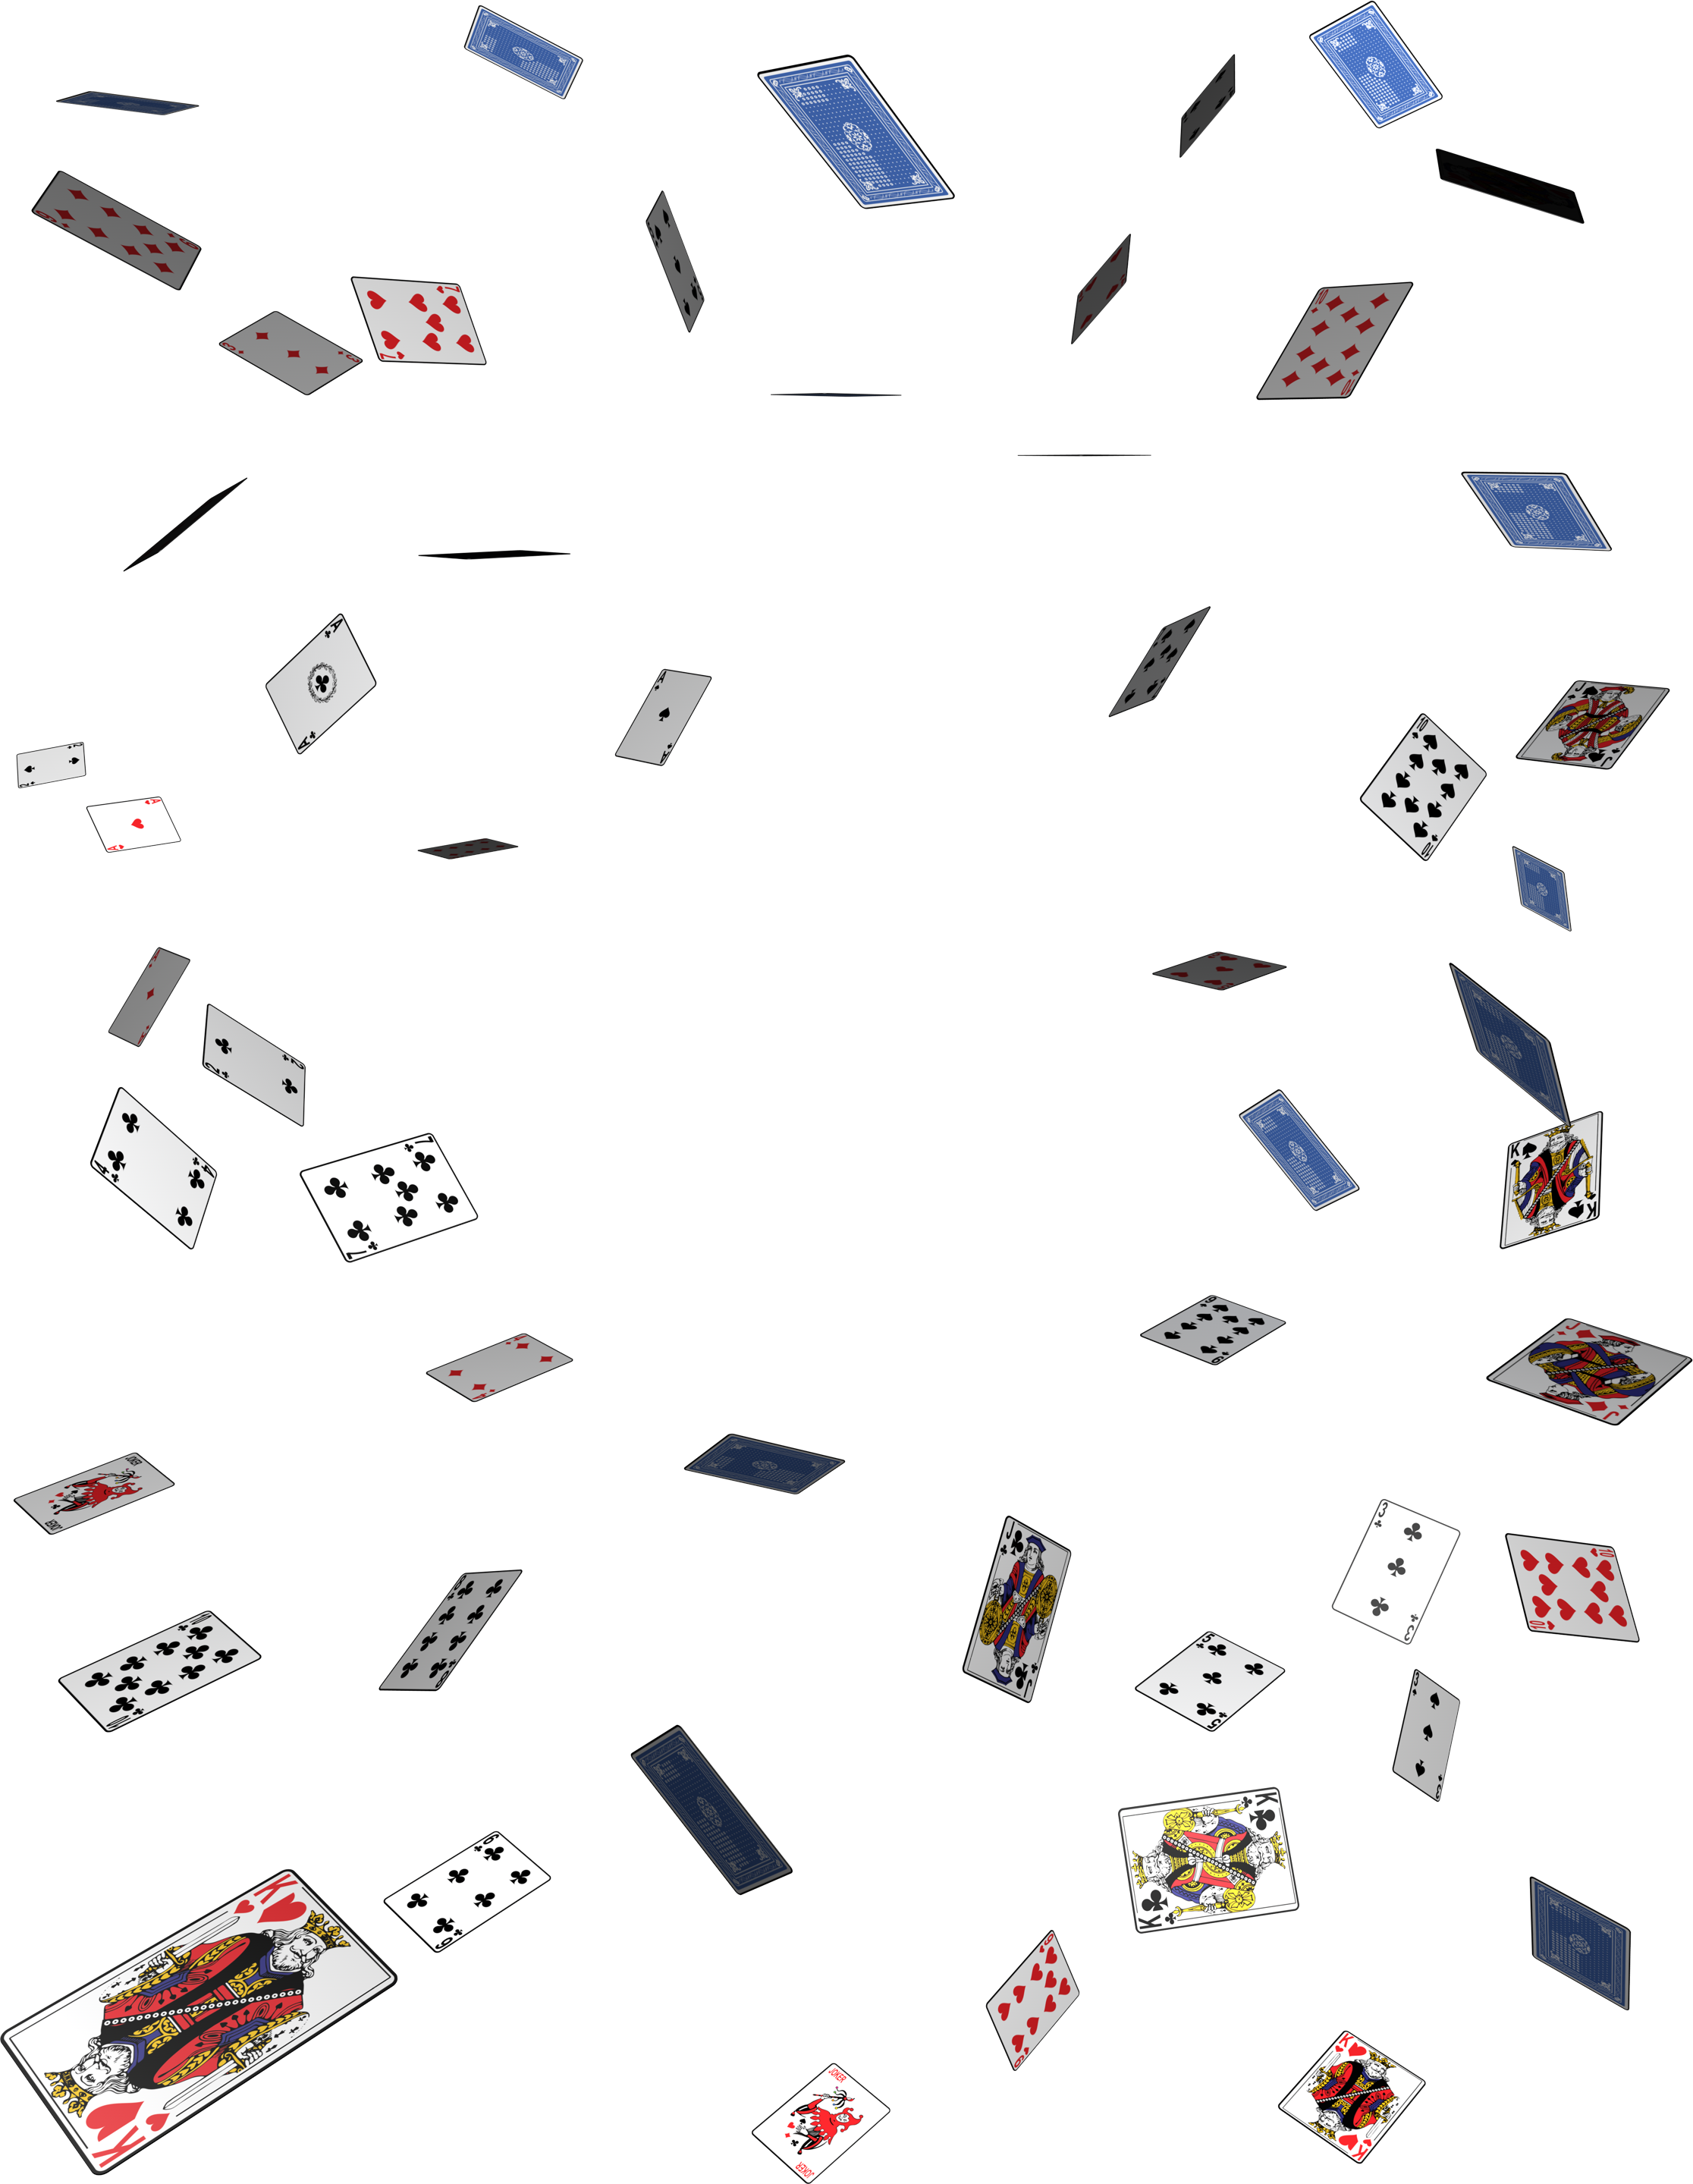 Network Media Social Graphics Deviantart Playing Card PNG Image